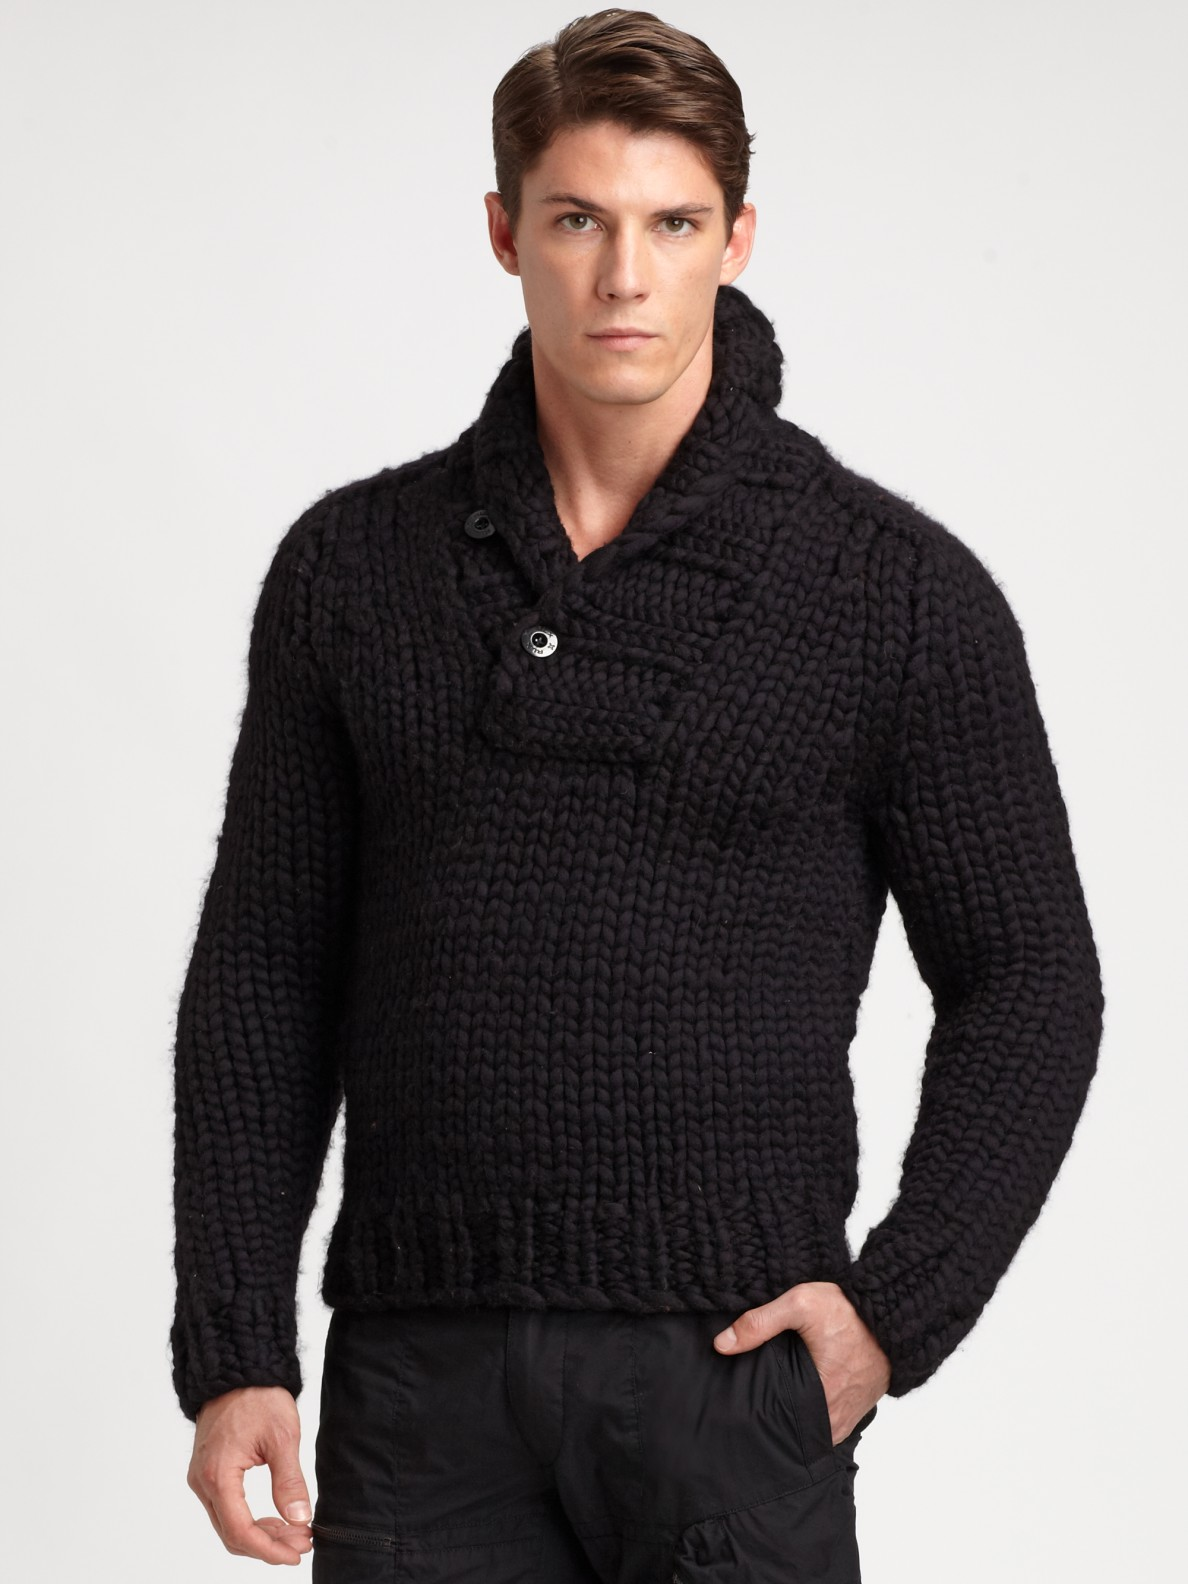 Ralph Lauren Shawl Collar Sweater